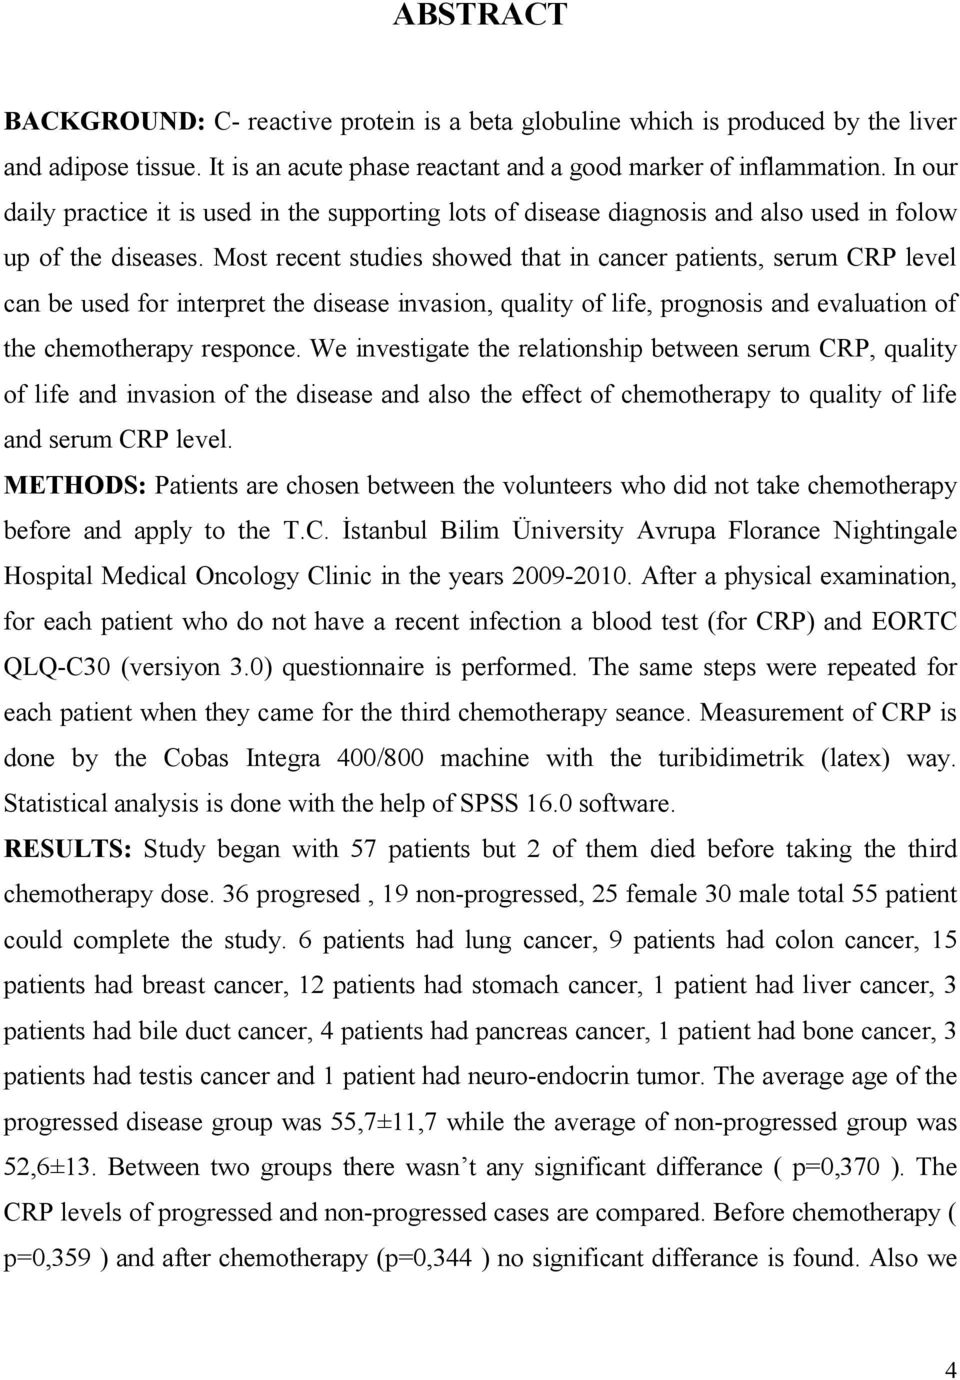 Most recent studies showed that in cancer patients, serum CRP level can be used for interpret the disease invasion, quality of life, prognosis and evaluation of the chemotherapy responce.